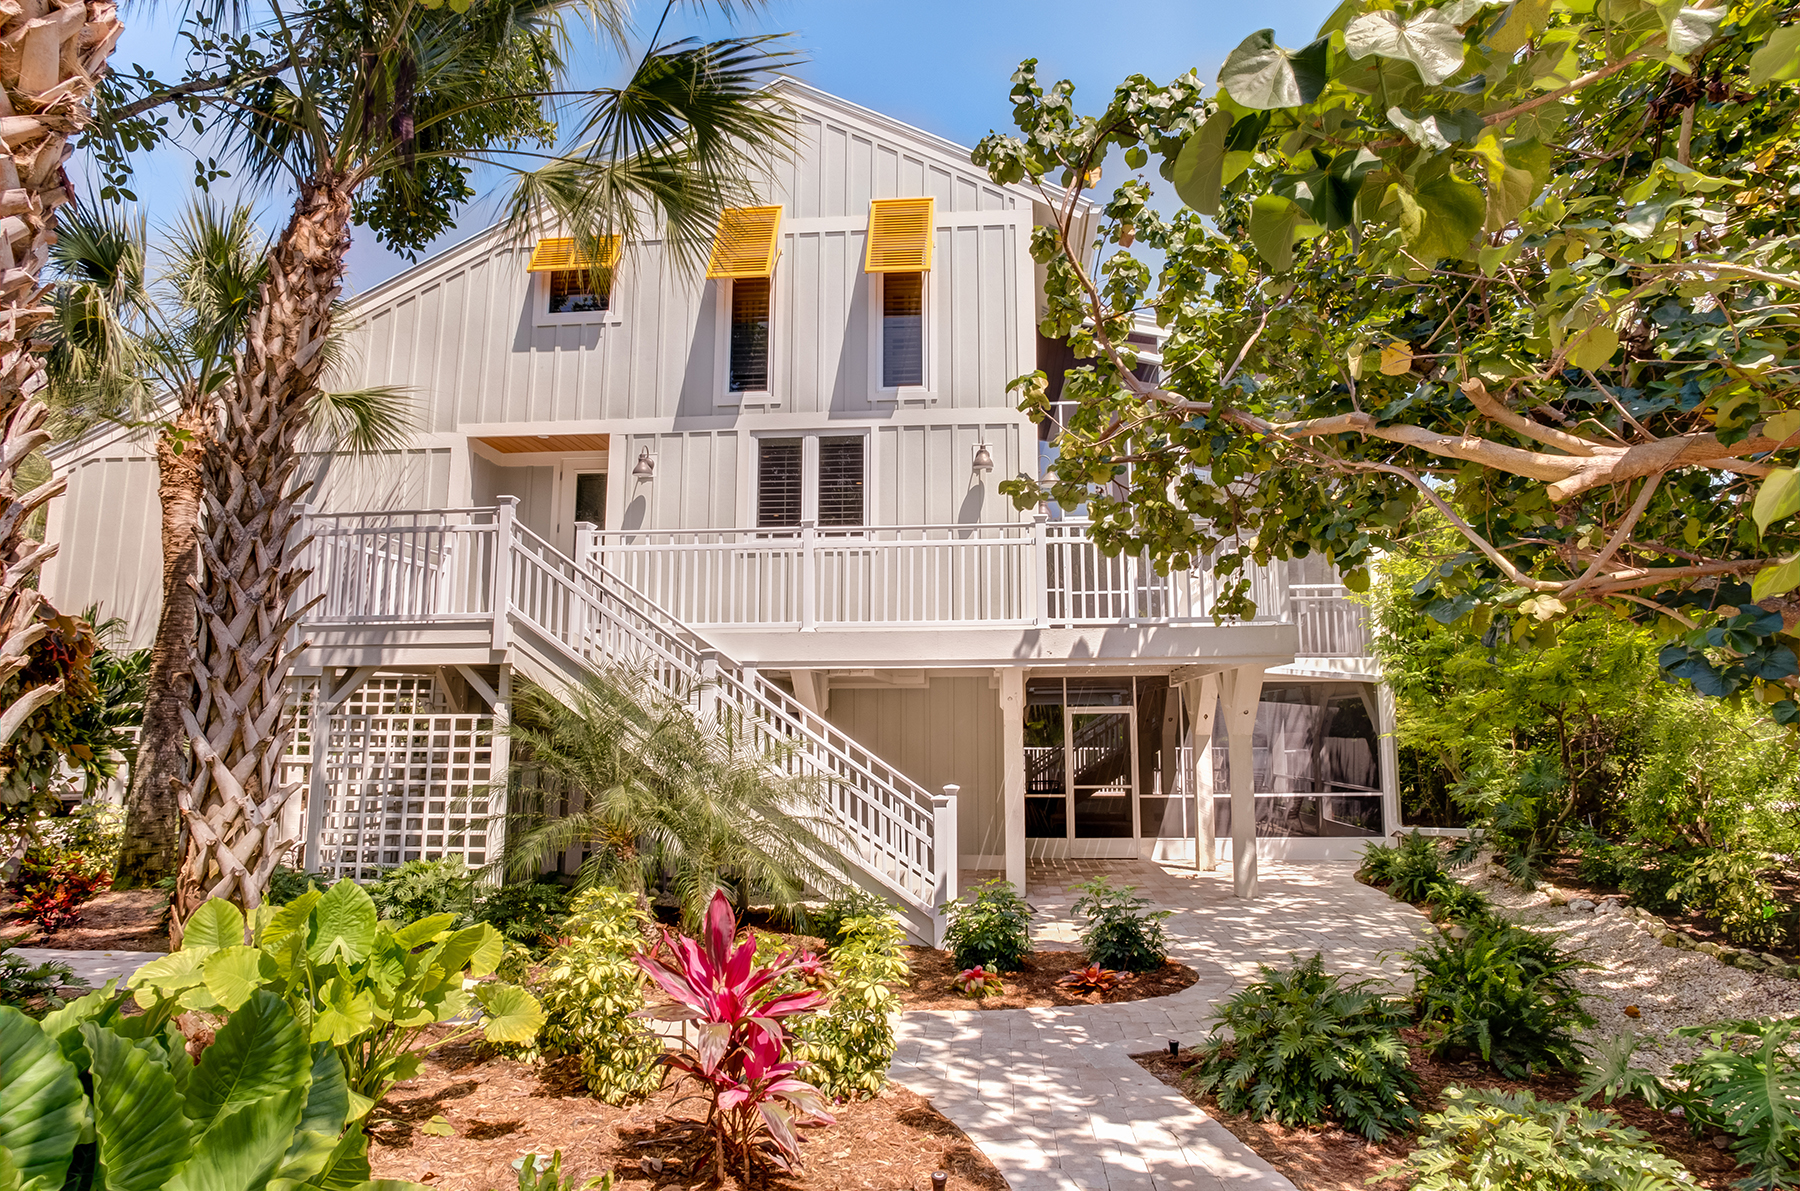 Casa Unifamiliar por un Venta en Captiva 11411 Old Lodge Ln Captiva, Florida, 33924 Estados Unidos